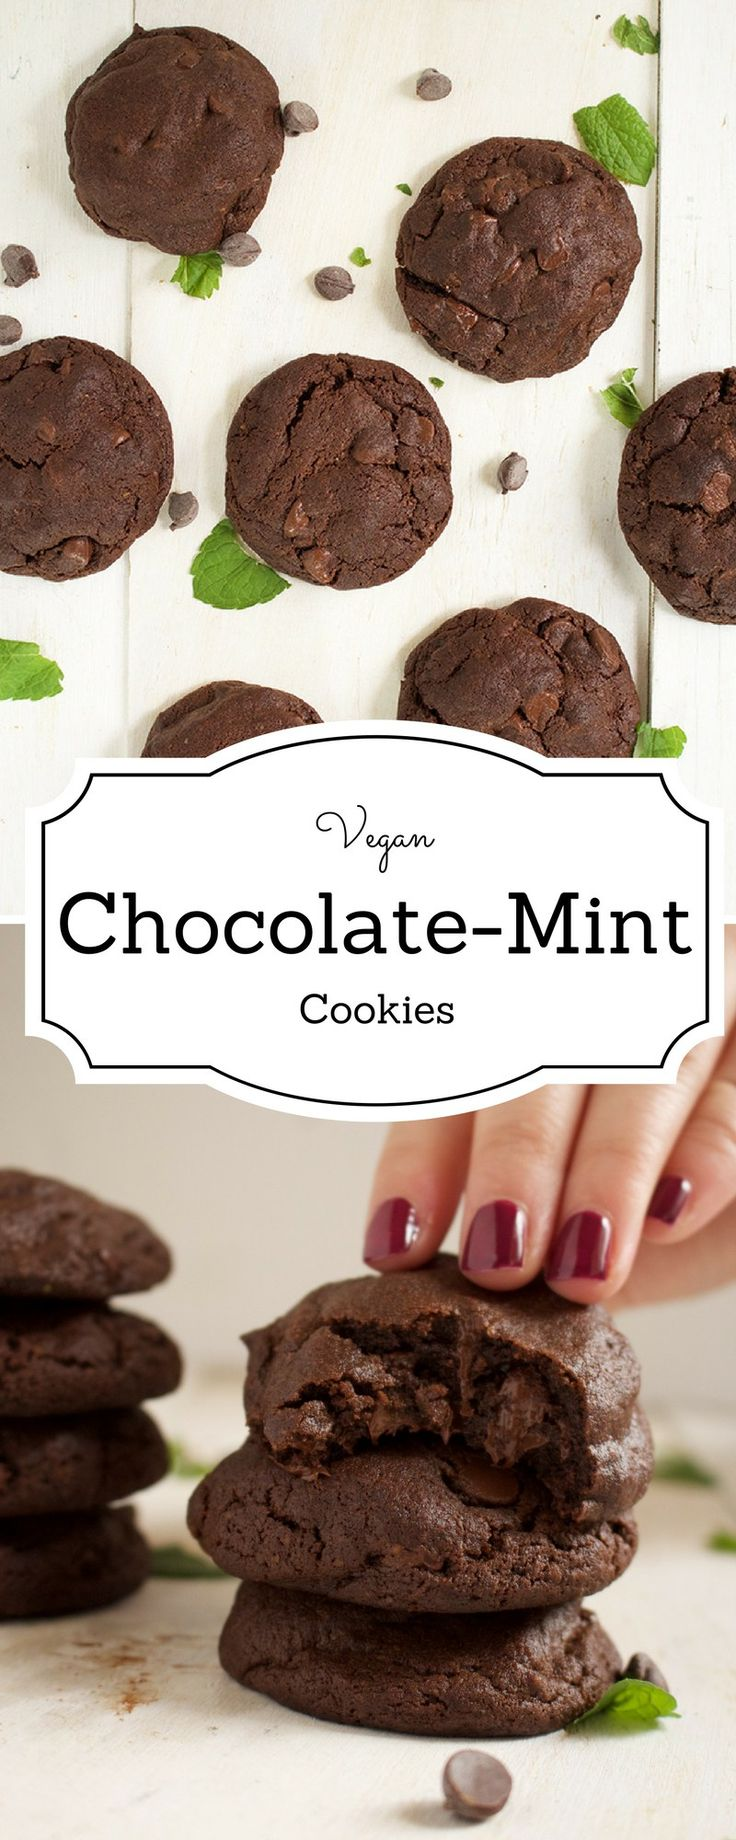 vegan chocolate mint cookies- What began as a simple experiment, turned into the best vegan chocolate mint cookies I have ever made, all thanks to a very simple technique -IdrissTwist.com